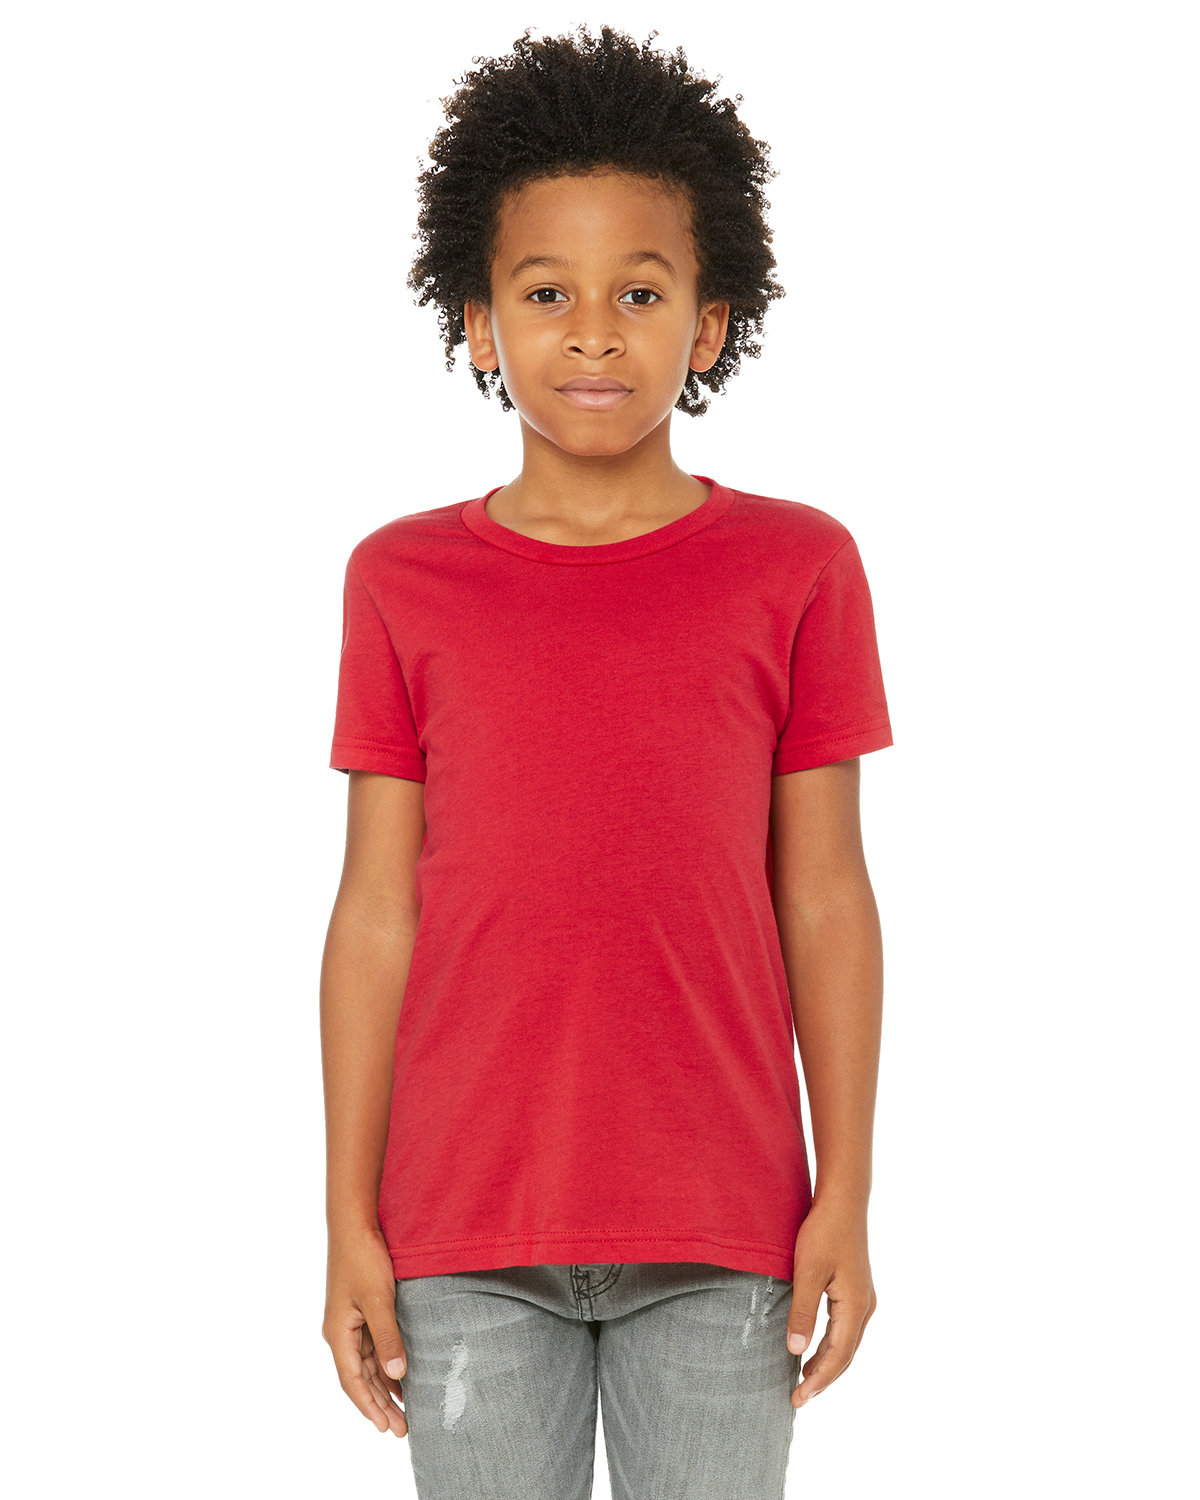 Bella + Canvas Youth Jersey T-Shirt RED